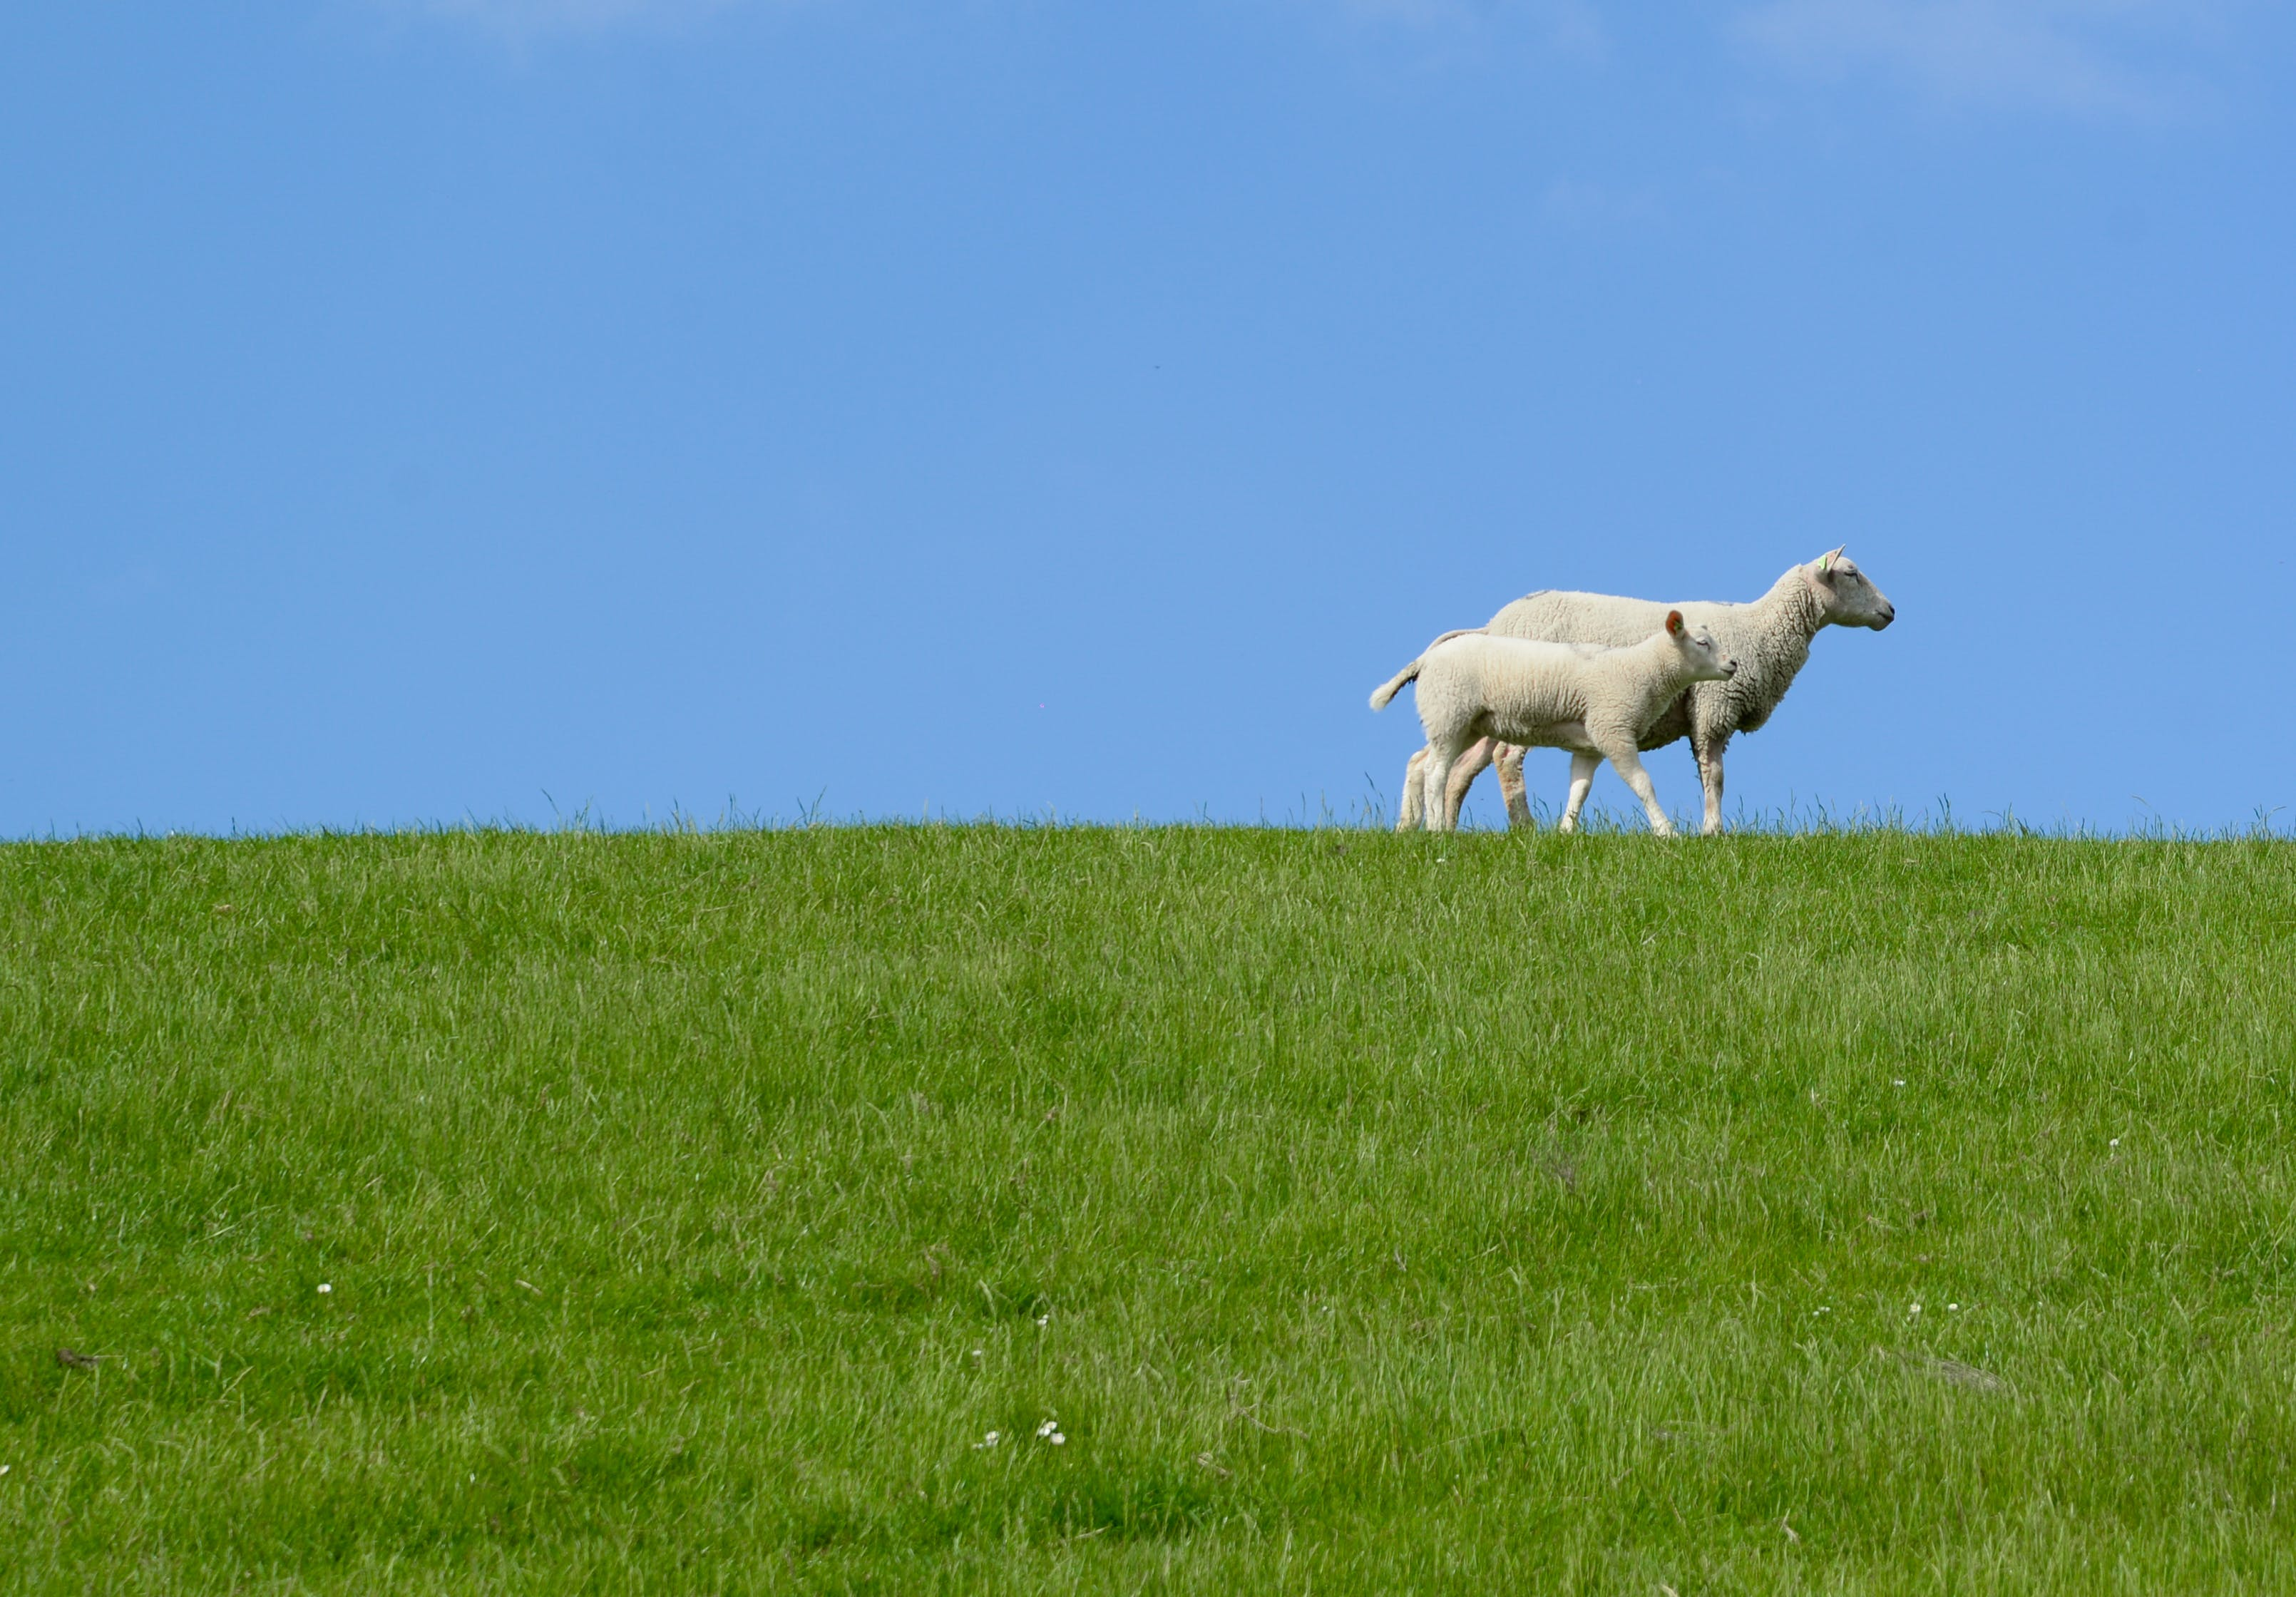 Two White Sheep on Grass Field